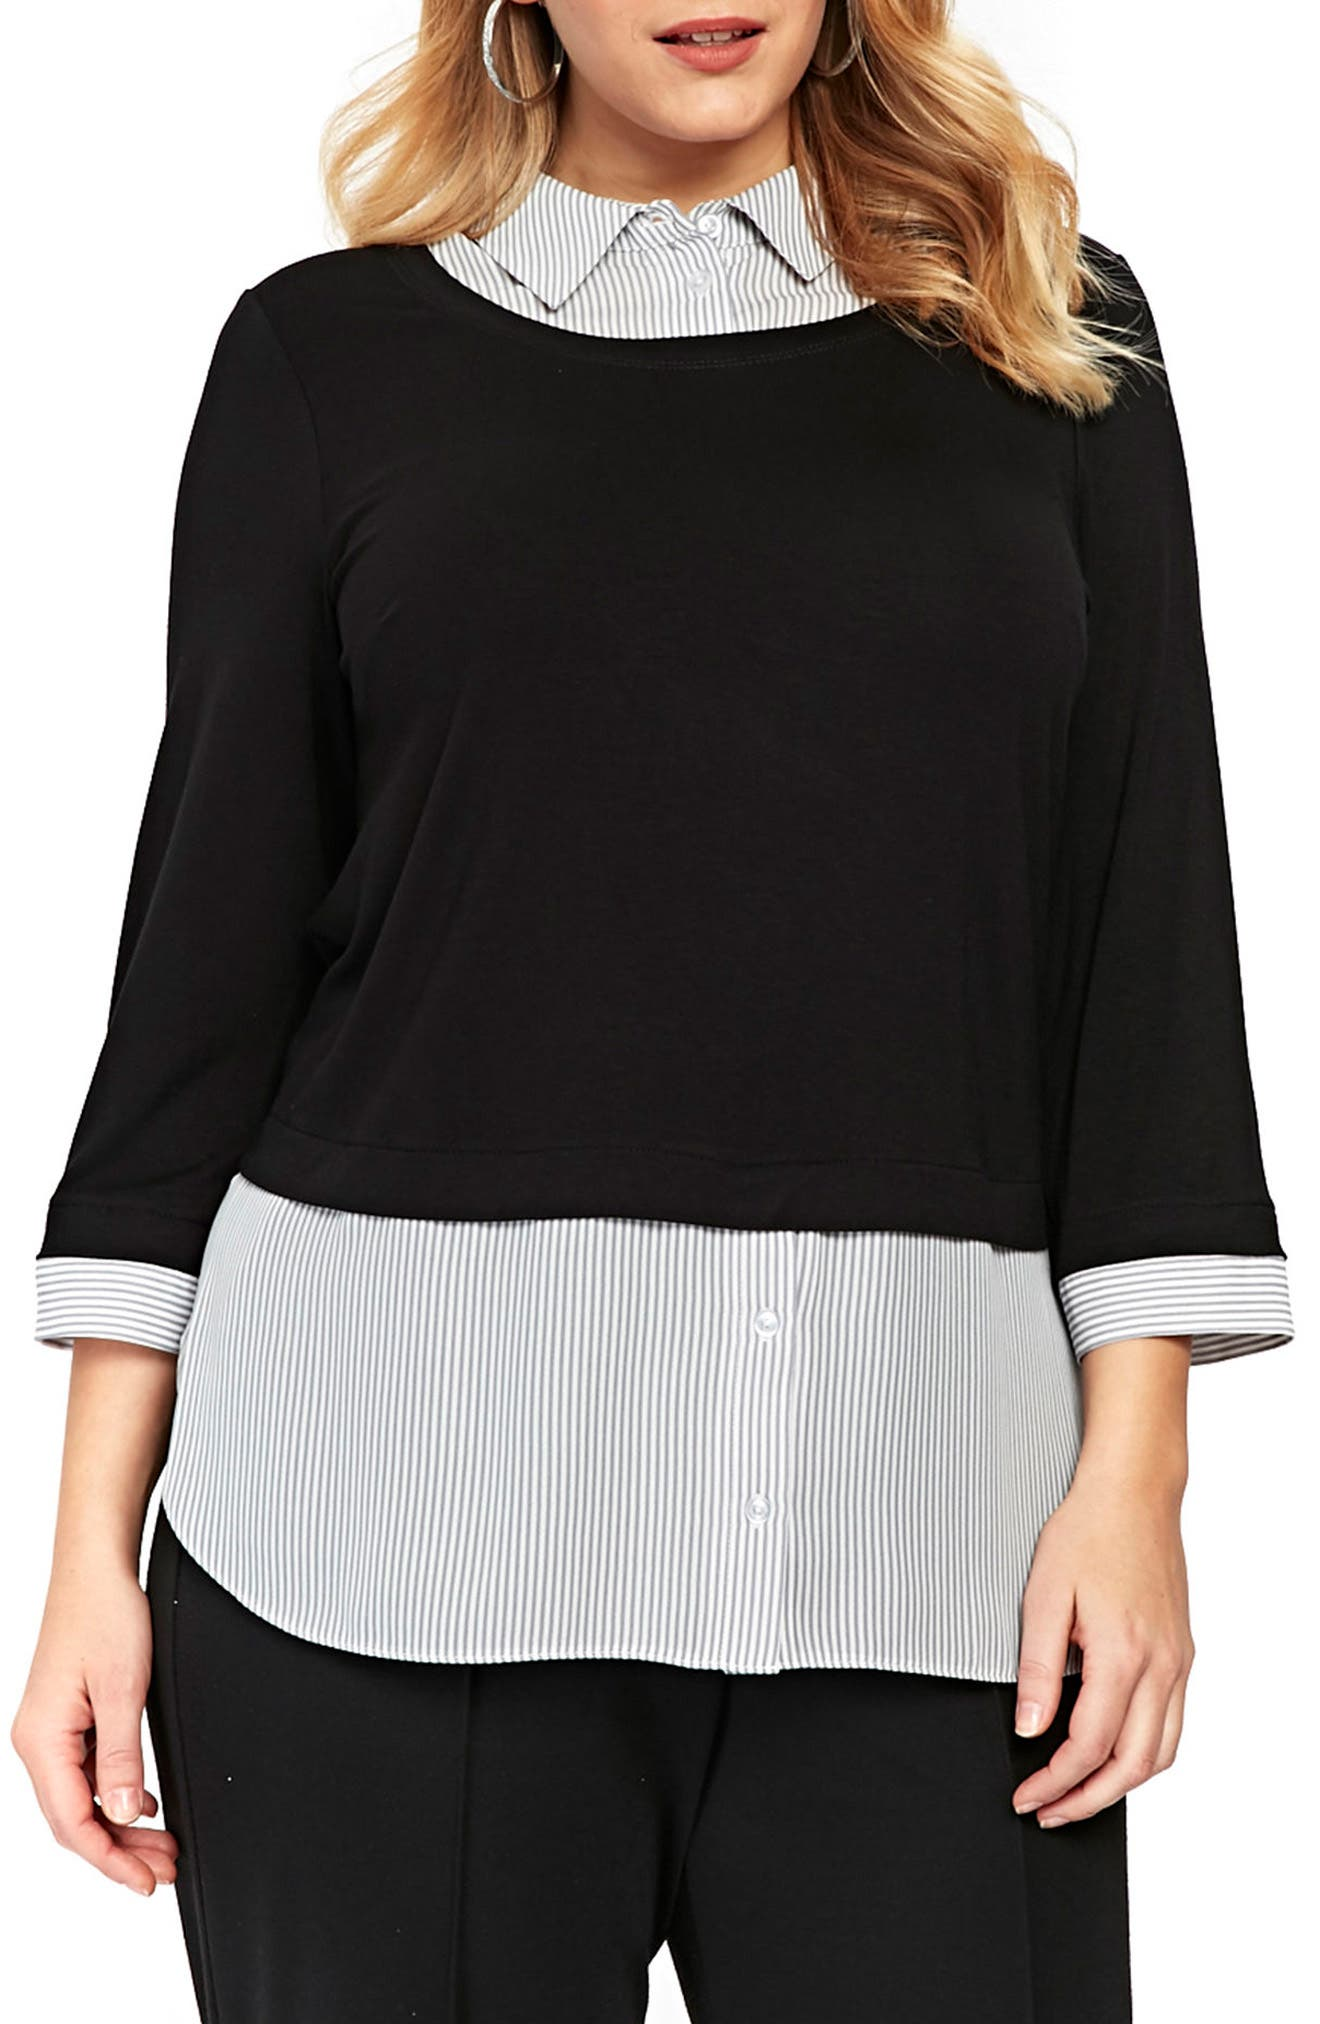 Stripe & Solid 2-in-1 Shirt,                         Main,                         color,